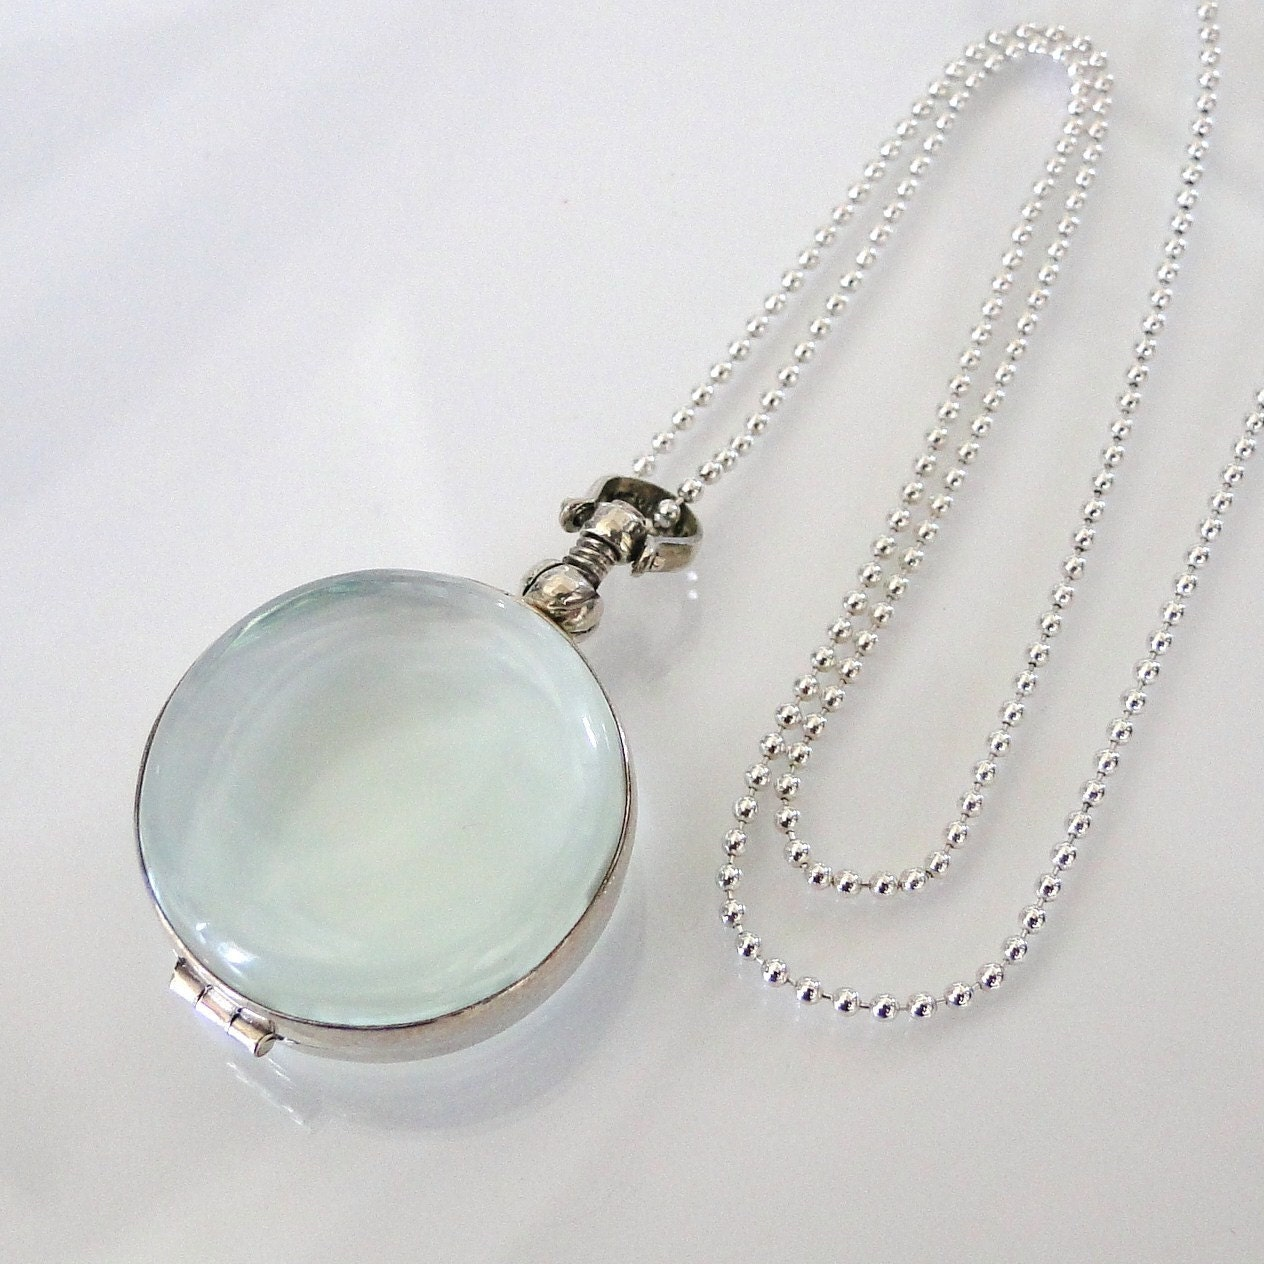 Glass locket necklacewith ball chain sterling silver clear zoom mozeypictures Choice Image